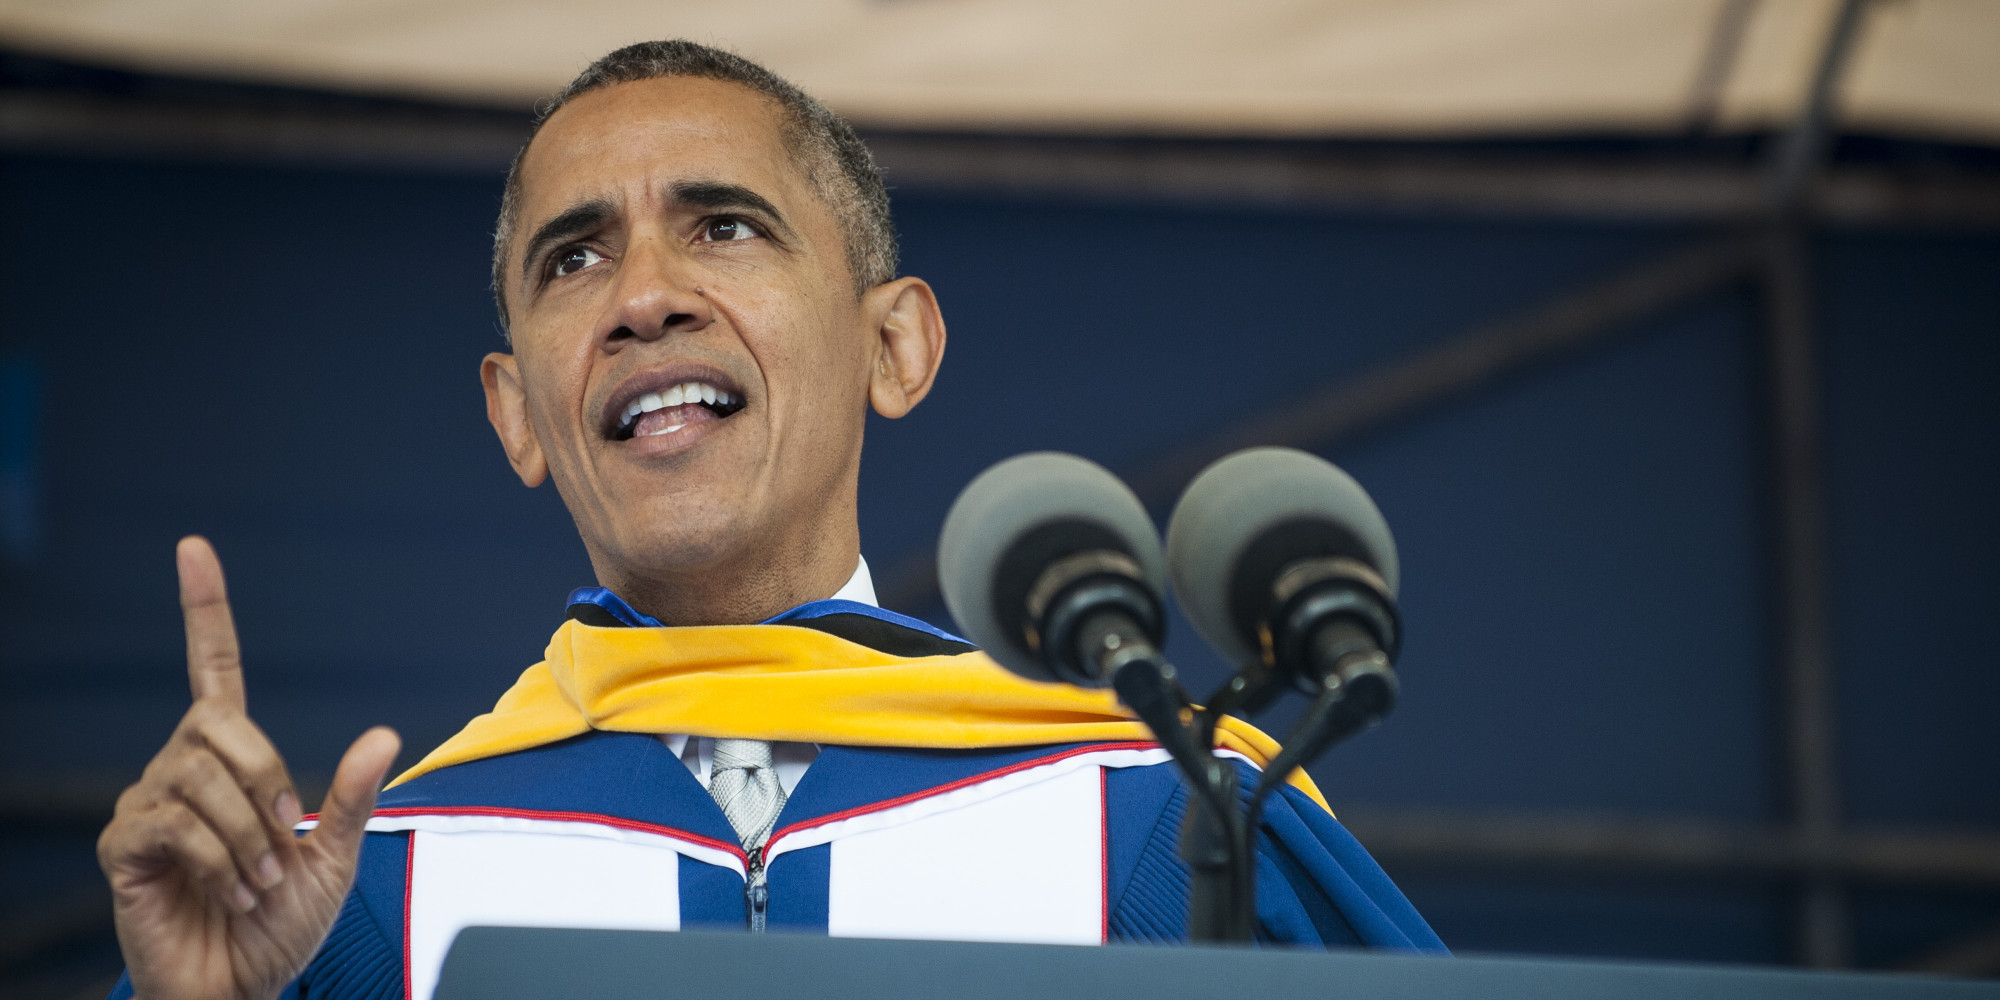 president obamas commencement speech on howard university in 2016 President barack obama has urged graduates at rutgers university   observations about the world that the class of 2016 is prepared to enter  on  may 7, obama delivered the commencement speech at howard university.